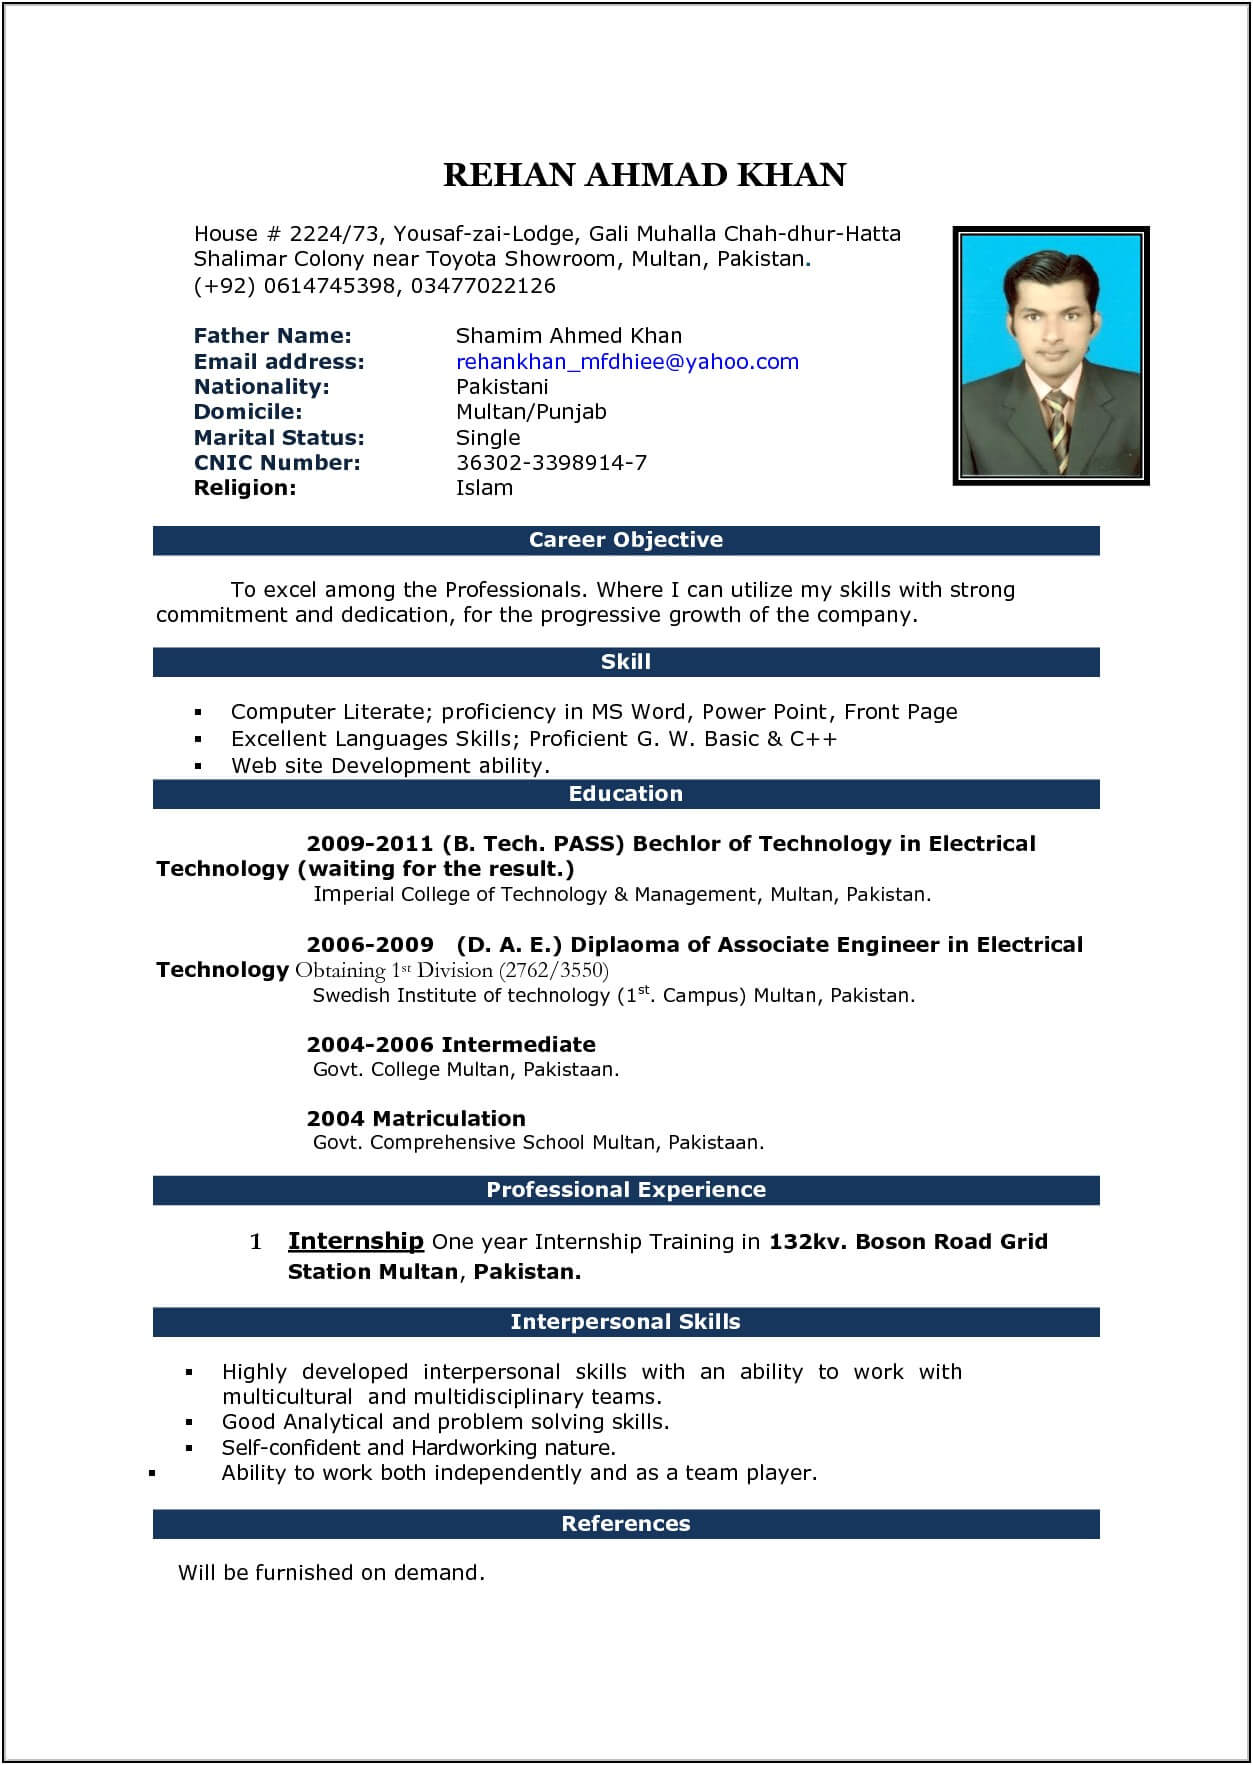 Modern Resume Template Word 2013 - Resume : Resume Designs Within Resume Templates Word 2013